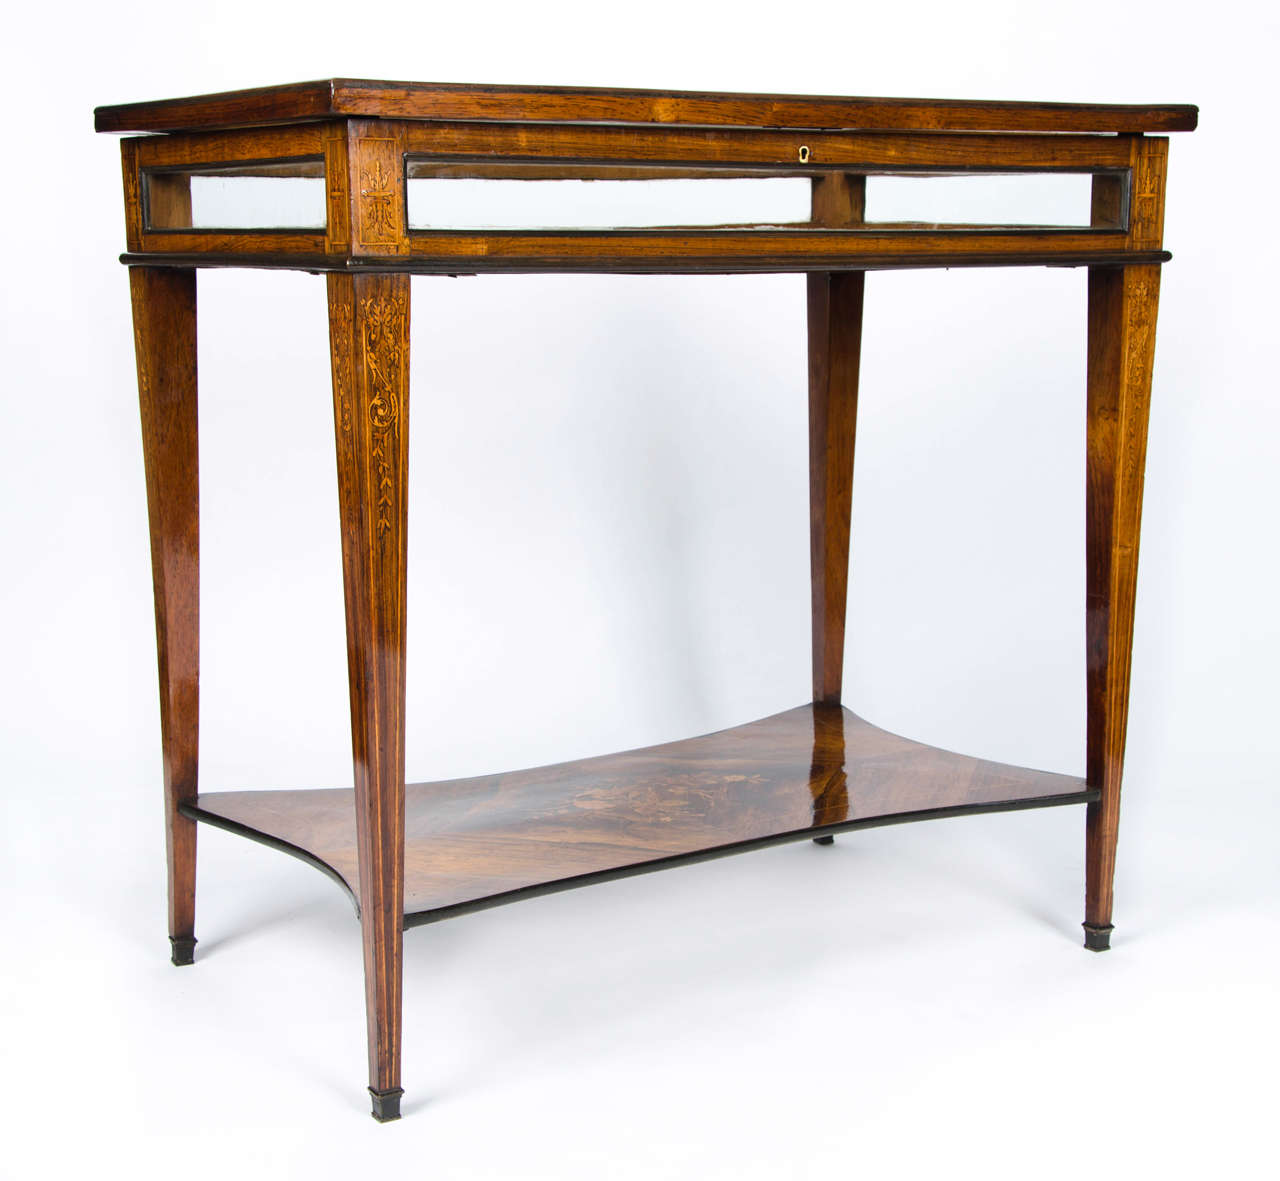 Charming mid 19th century vitrine table at 1stdibs for Table vitrine